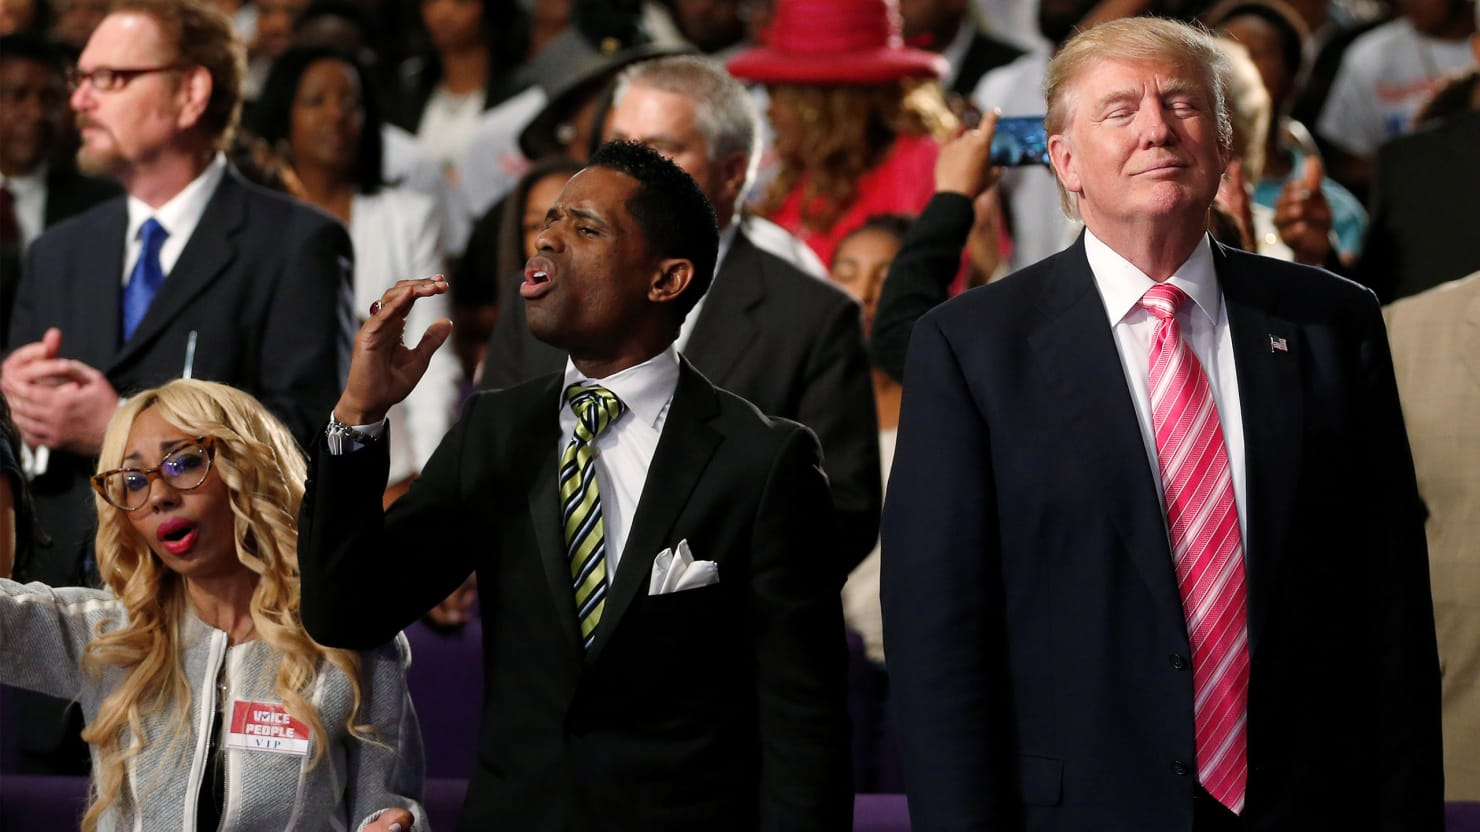 Donald Trump The Birther Goes To A Black Church In Detroit